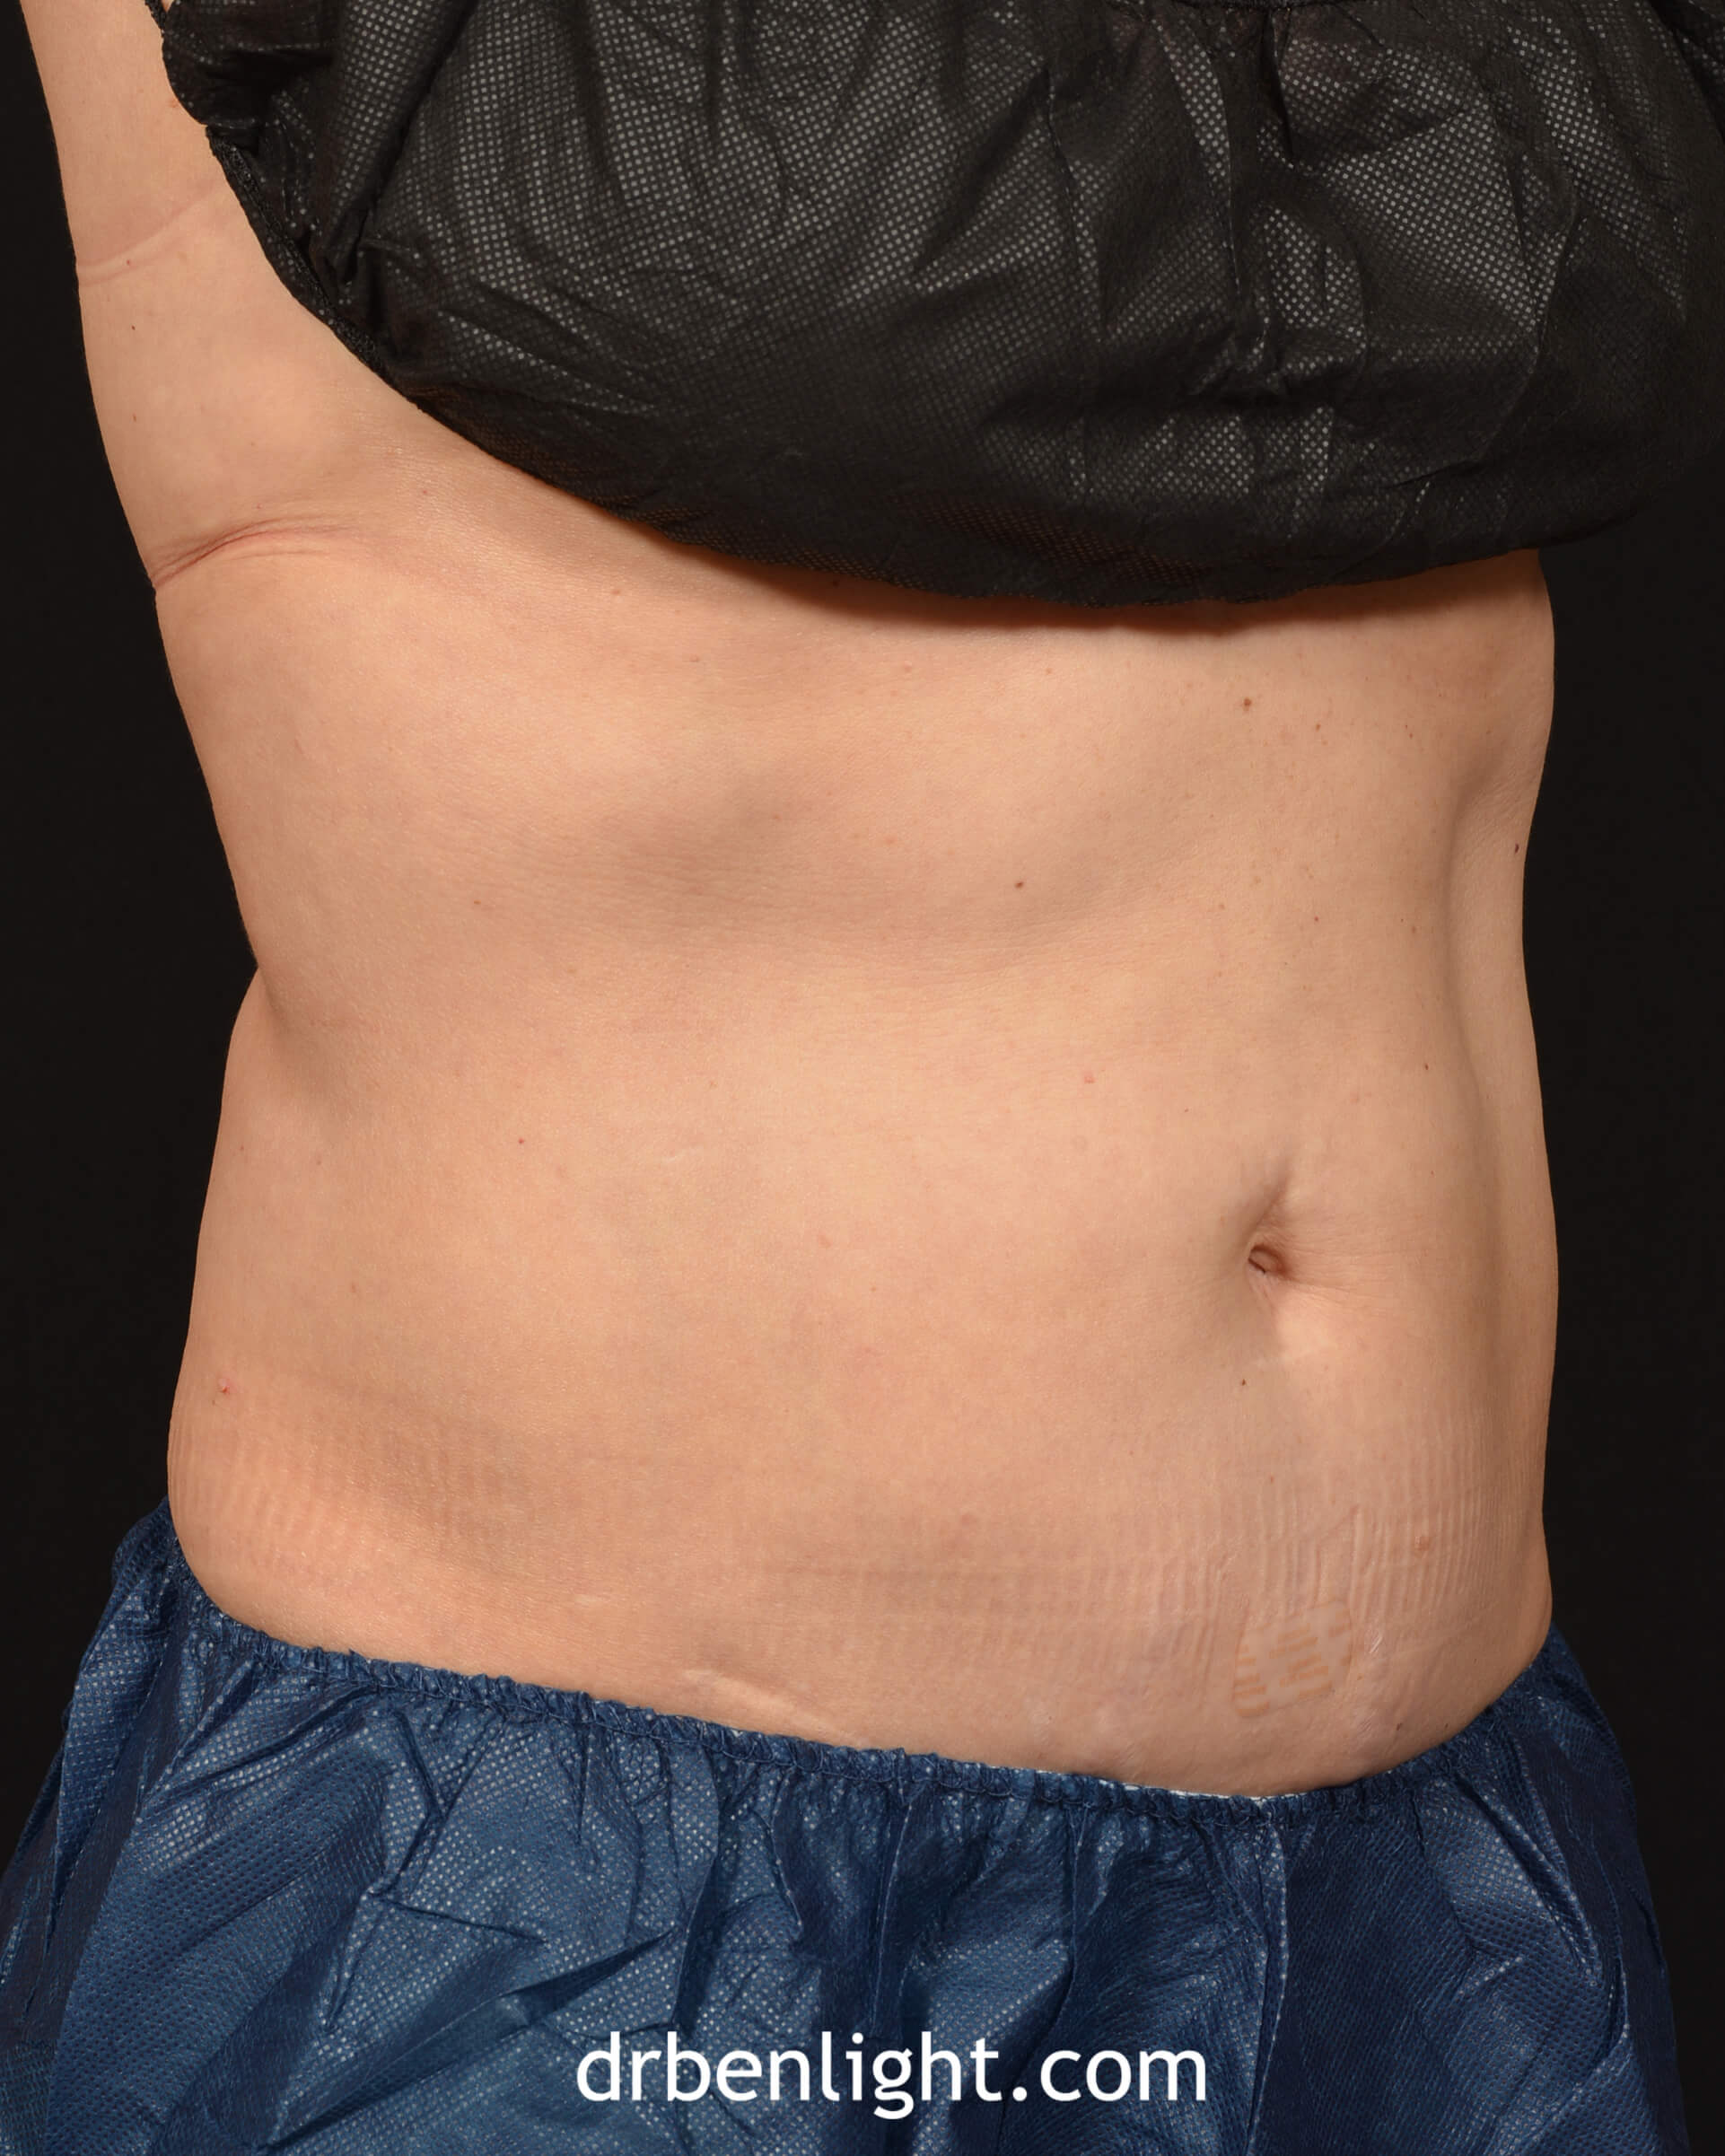 Female patient after CoolSculpting